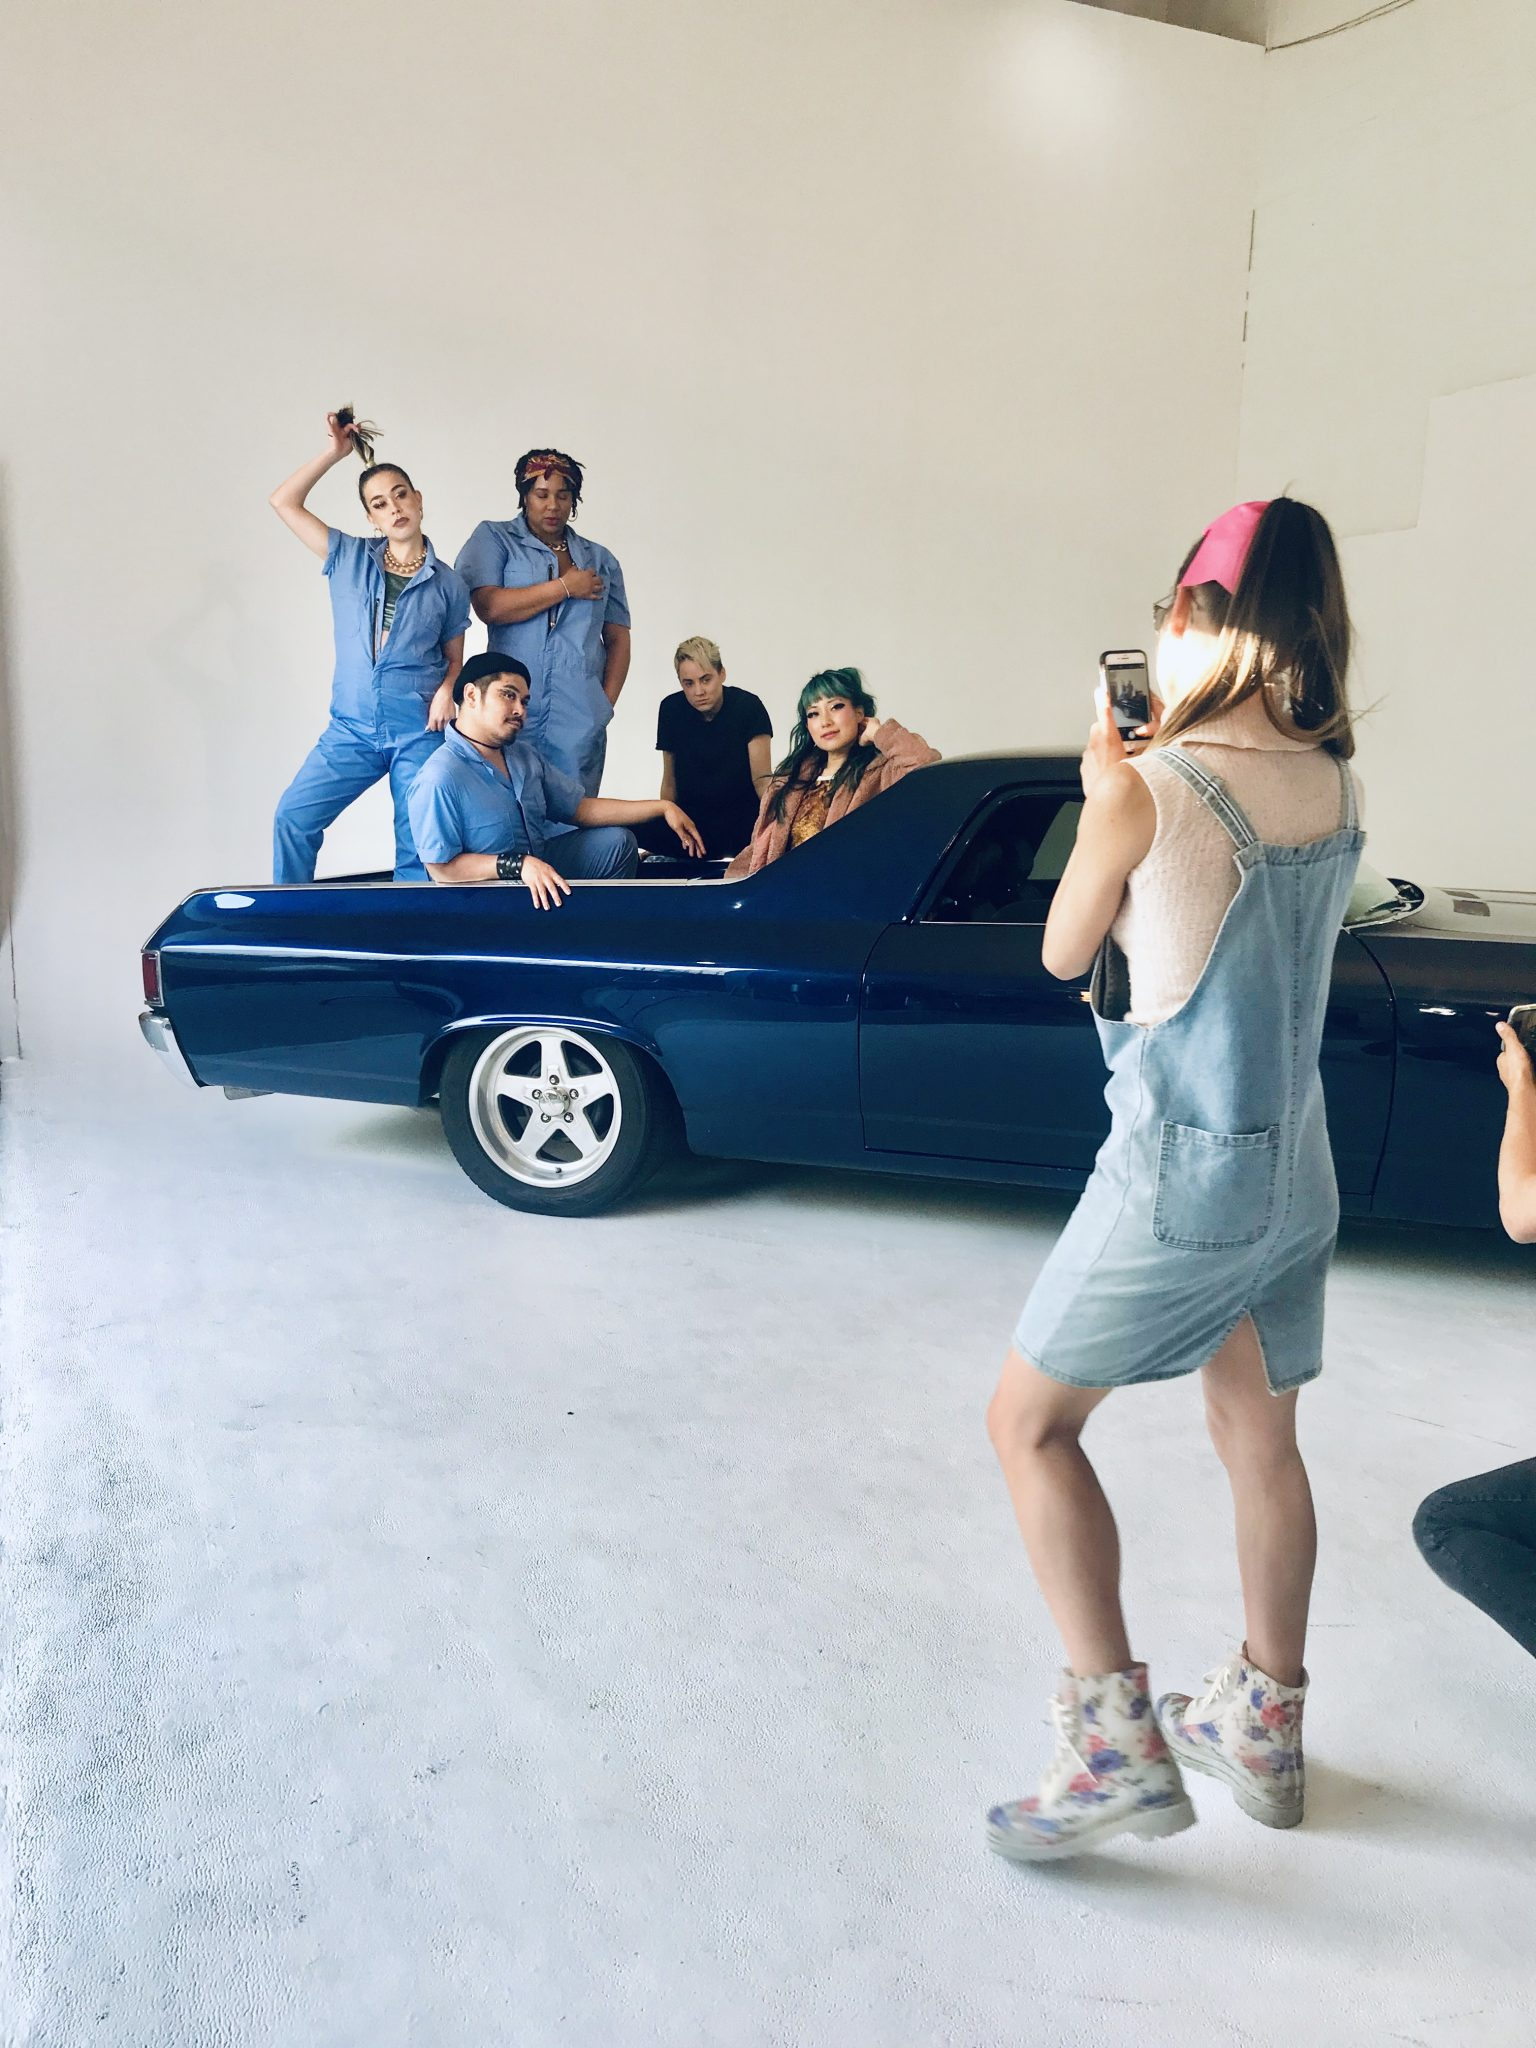 Colour photograph from, the Another Life music video. It features Polartropica sat in the hatchback of a dark blue car which is in a studio setting. Around them are 4 other people. 1 is the blonde short haired love interest and the other 3 are mechanics dressed in blue overalls. They all post for a photograph being taken on a phone by another person in the front right corner of the photo. They wear blue denim dungarees, floral boots, a pale top and pink bow in their hair.